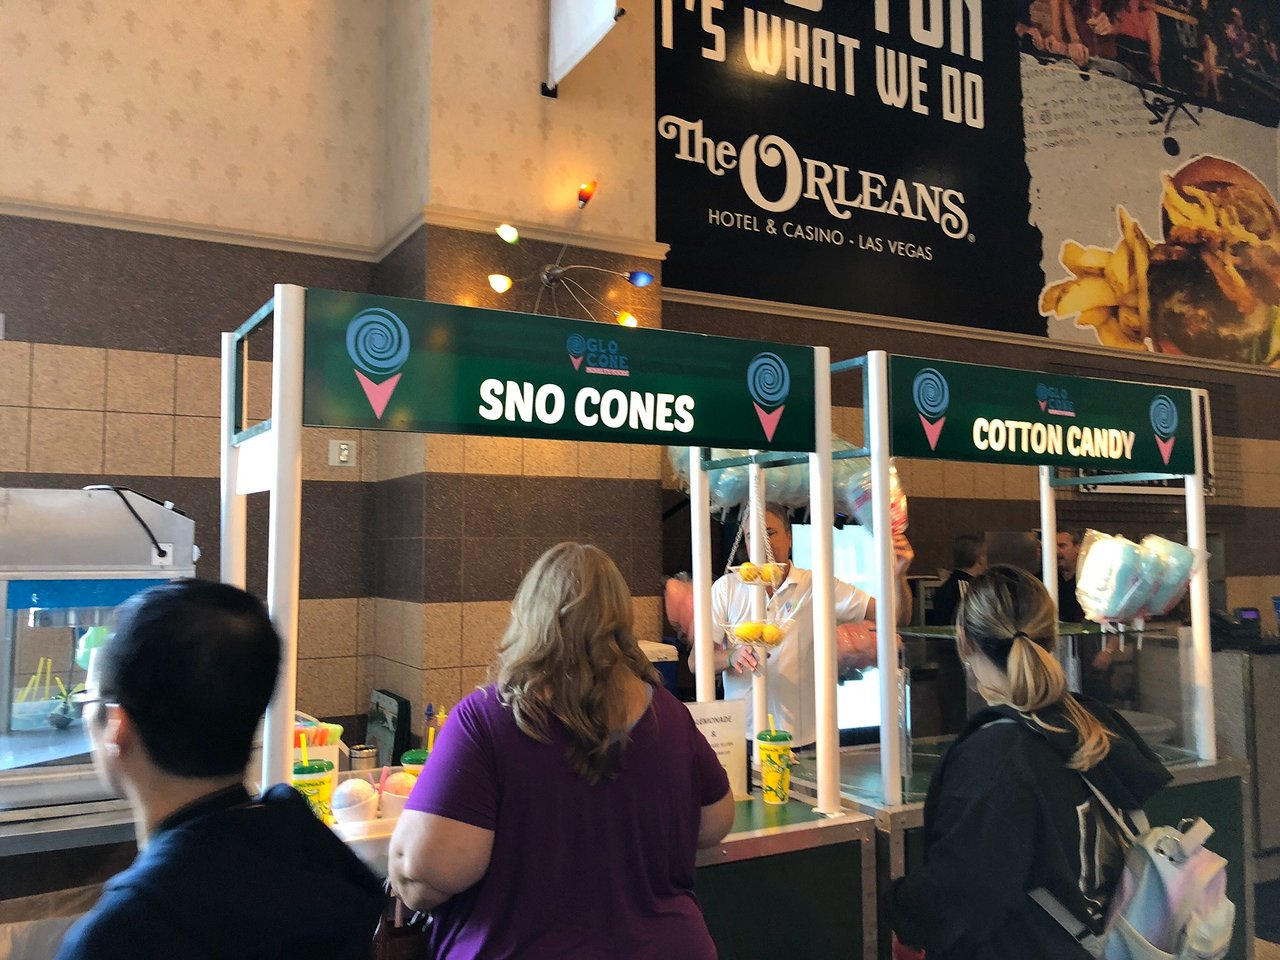 Orleans Arena Las Vegas 2020 All You Need To Know Before You Go With Photos Tripadvisor